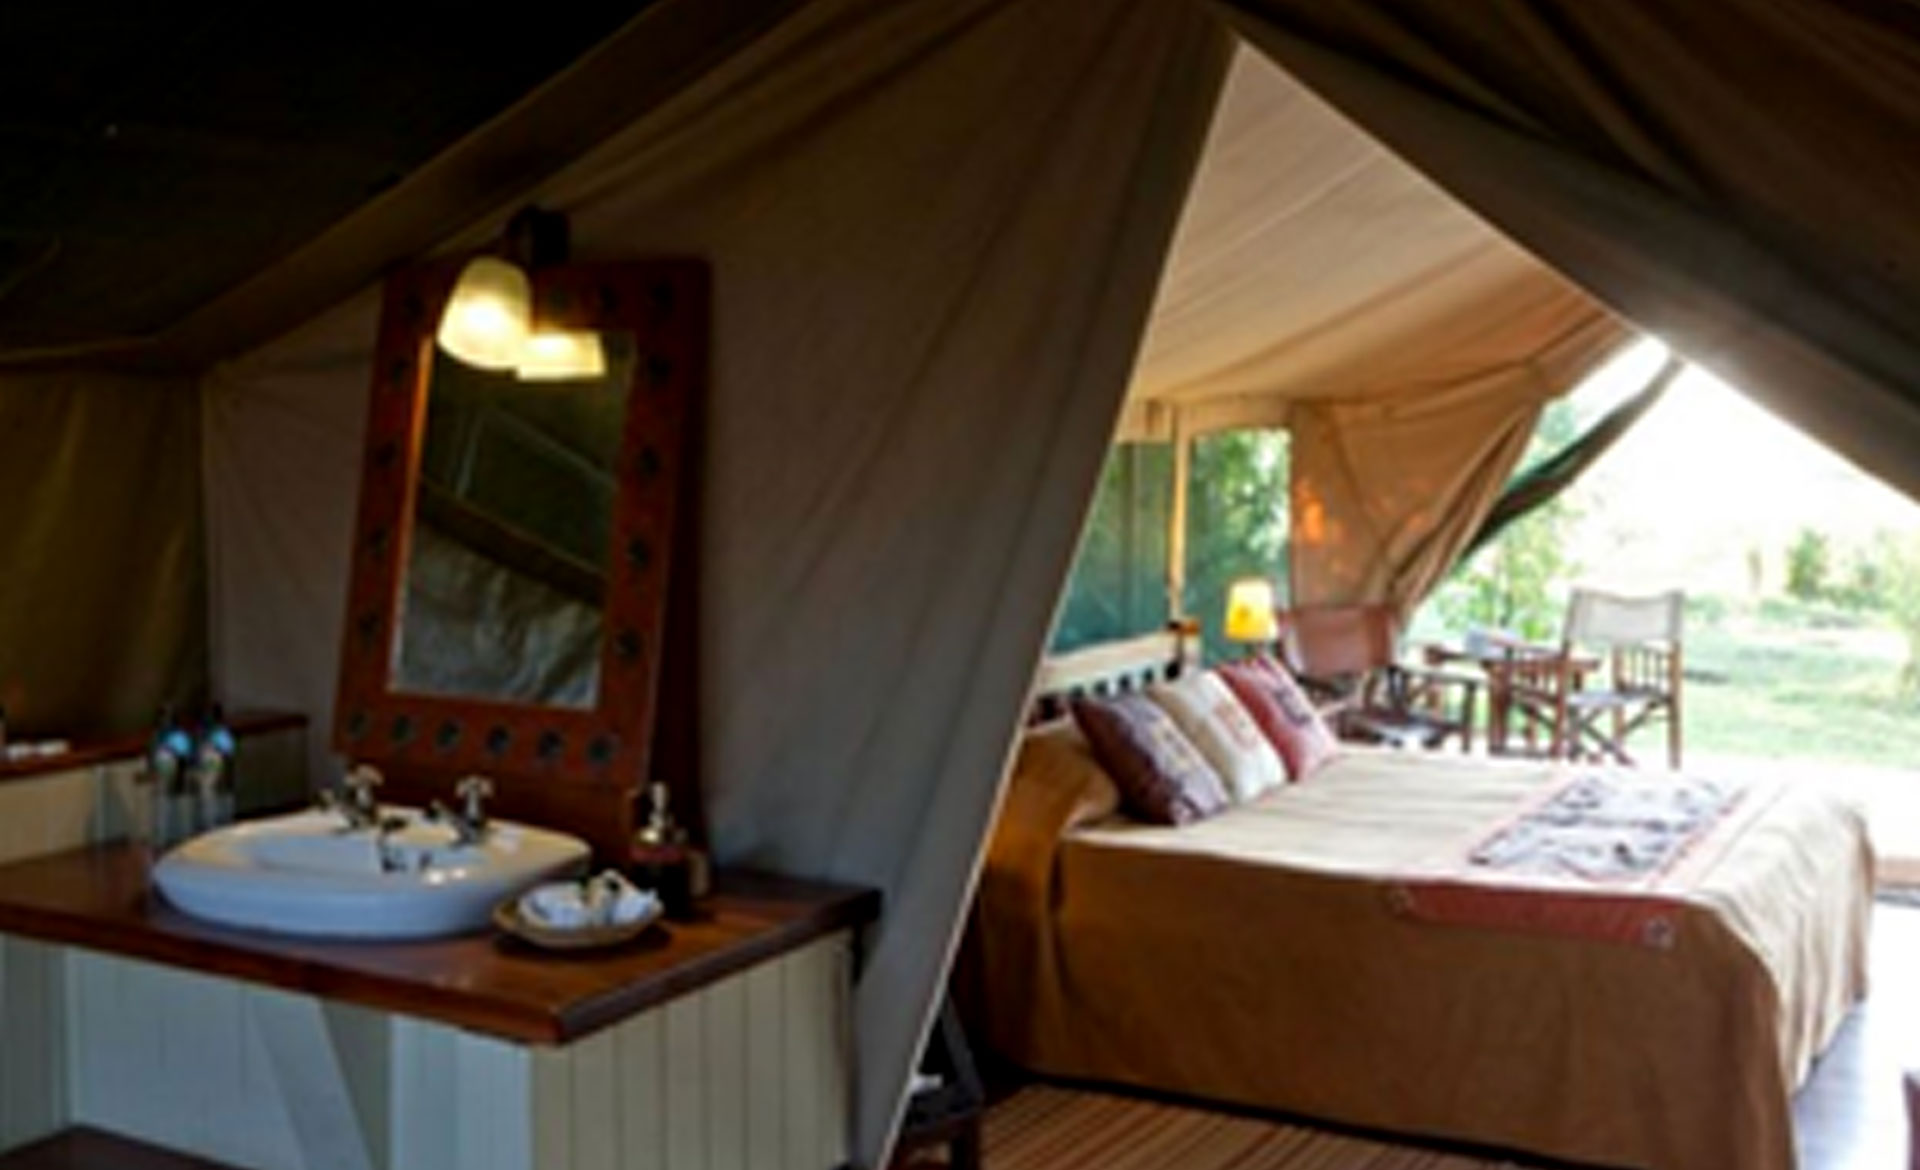 Diani_travel_center_diani_tours_and_safaris_2_Days_masai_mara_by_air_diani_masai_mara-air_Governors_Camp